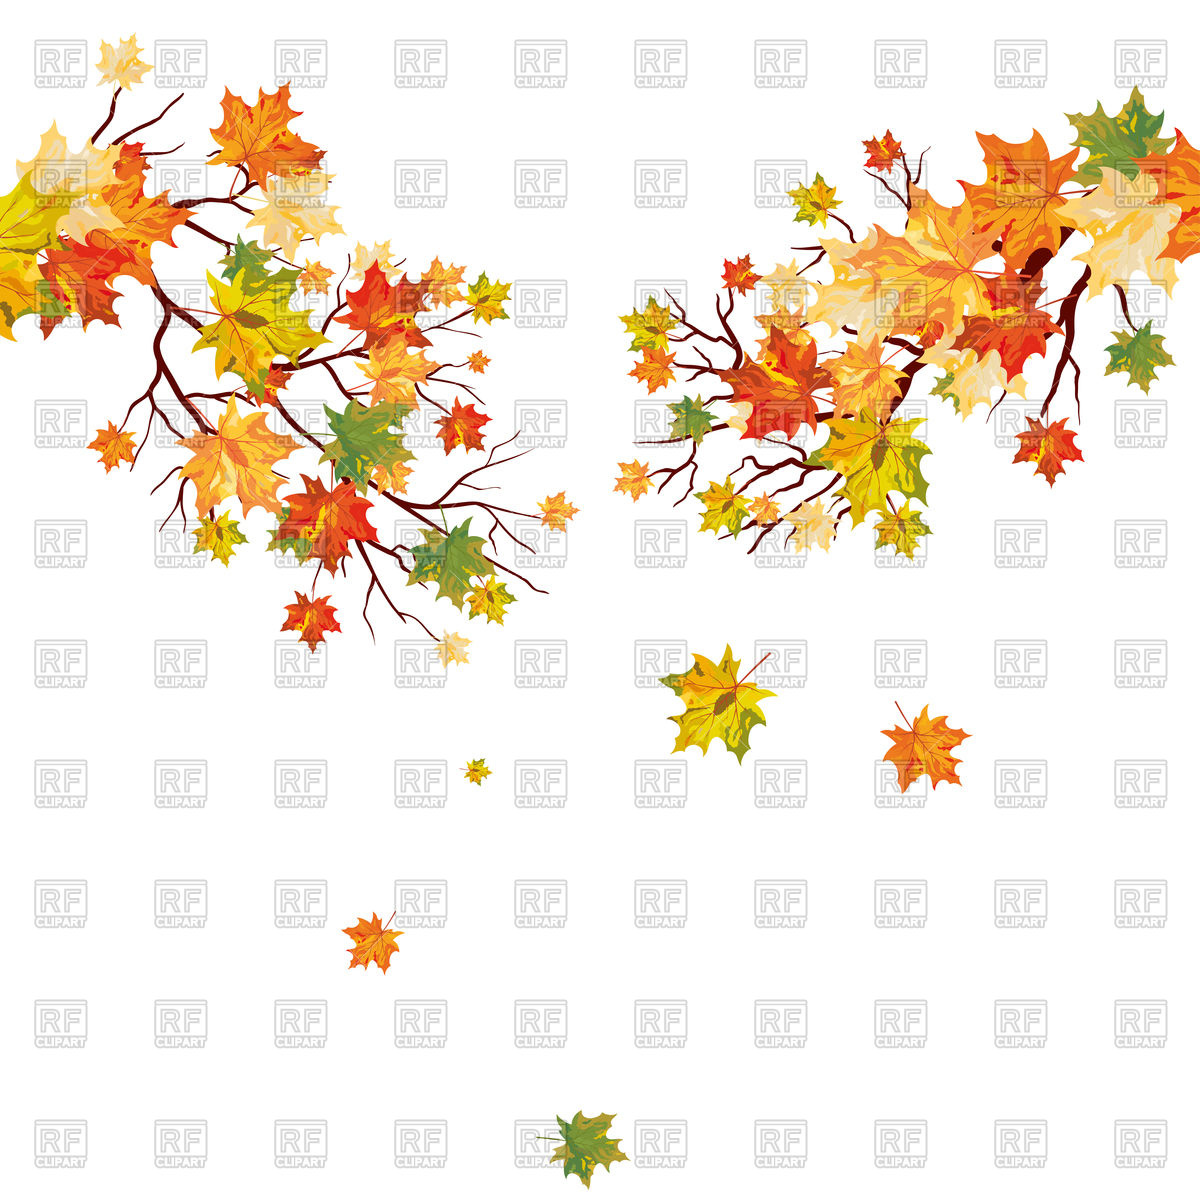 1200x1200 Autumn Maple Tree Branch With Falling Leaves Vector Image Vector